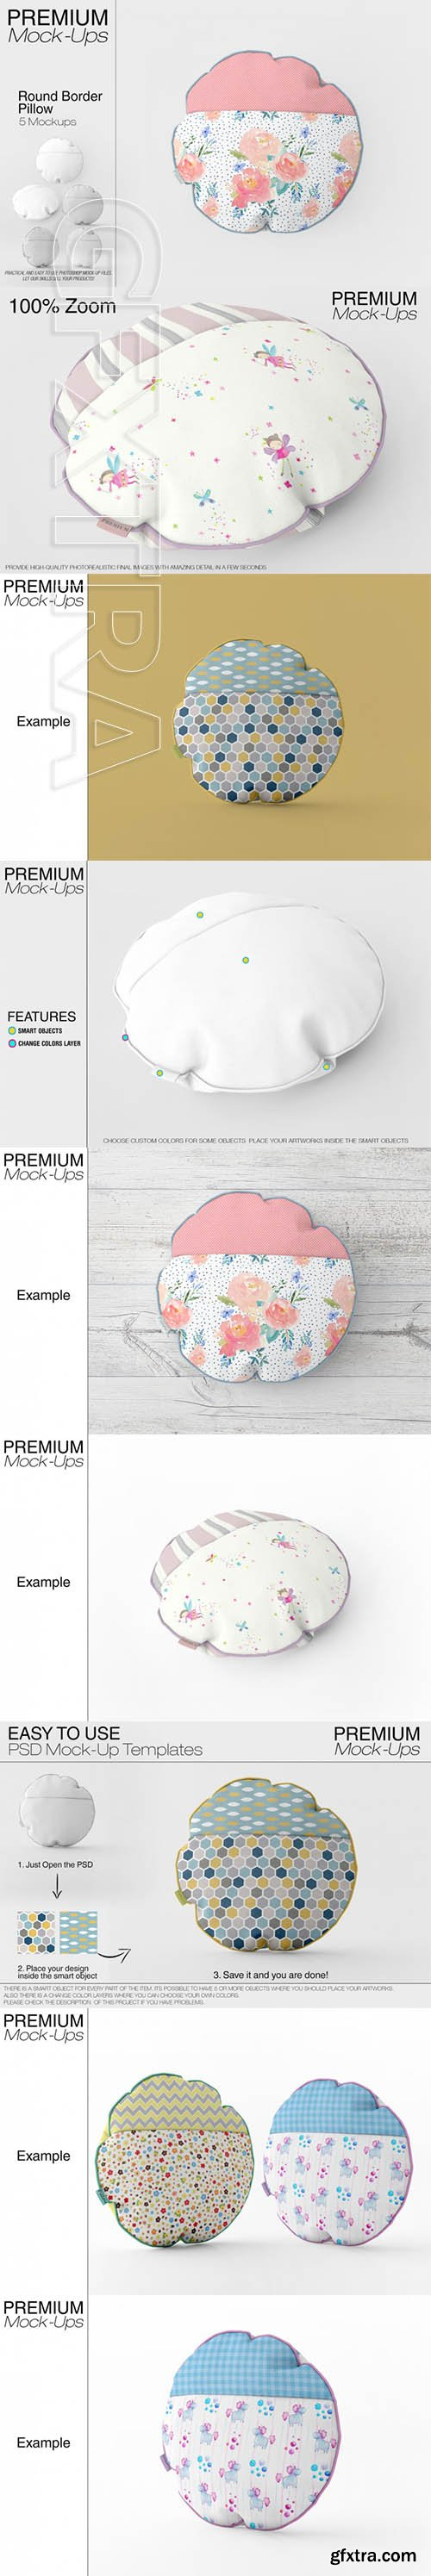 Round Borderd Pillow Mockup Pack